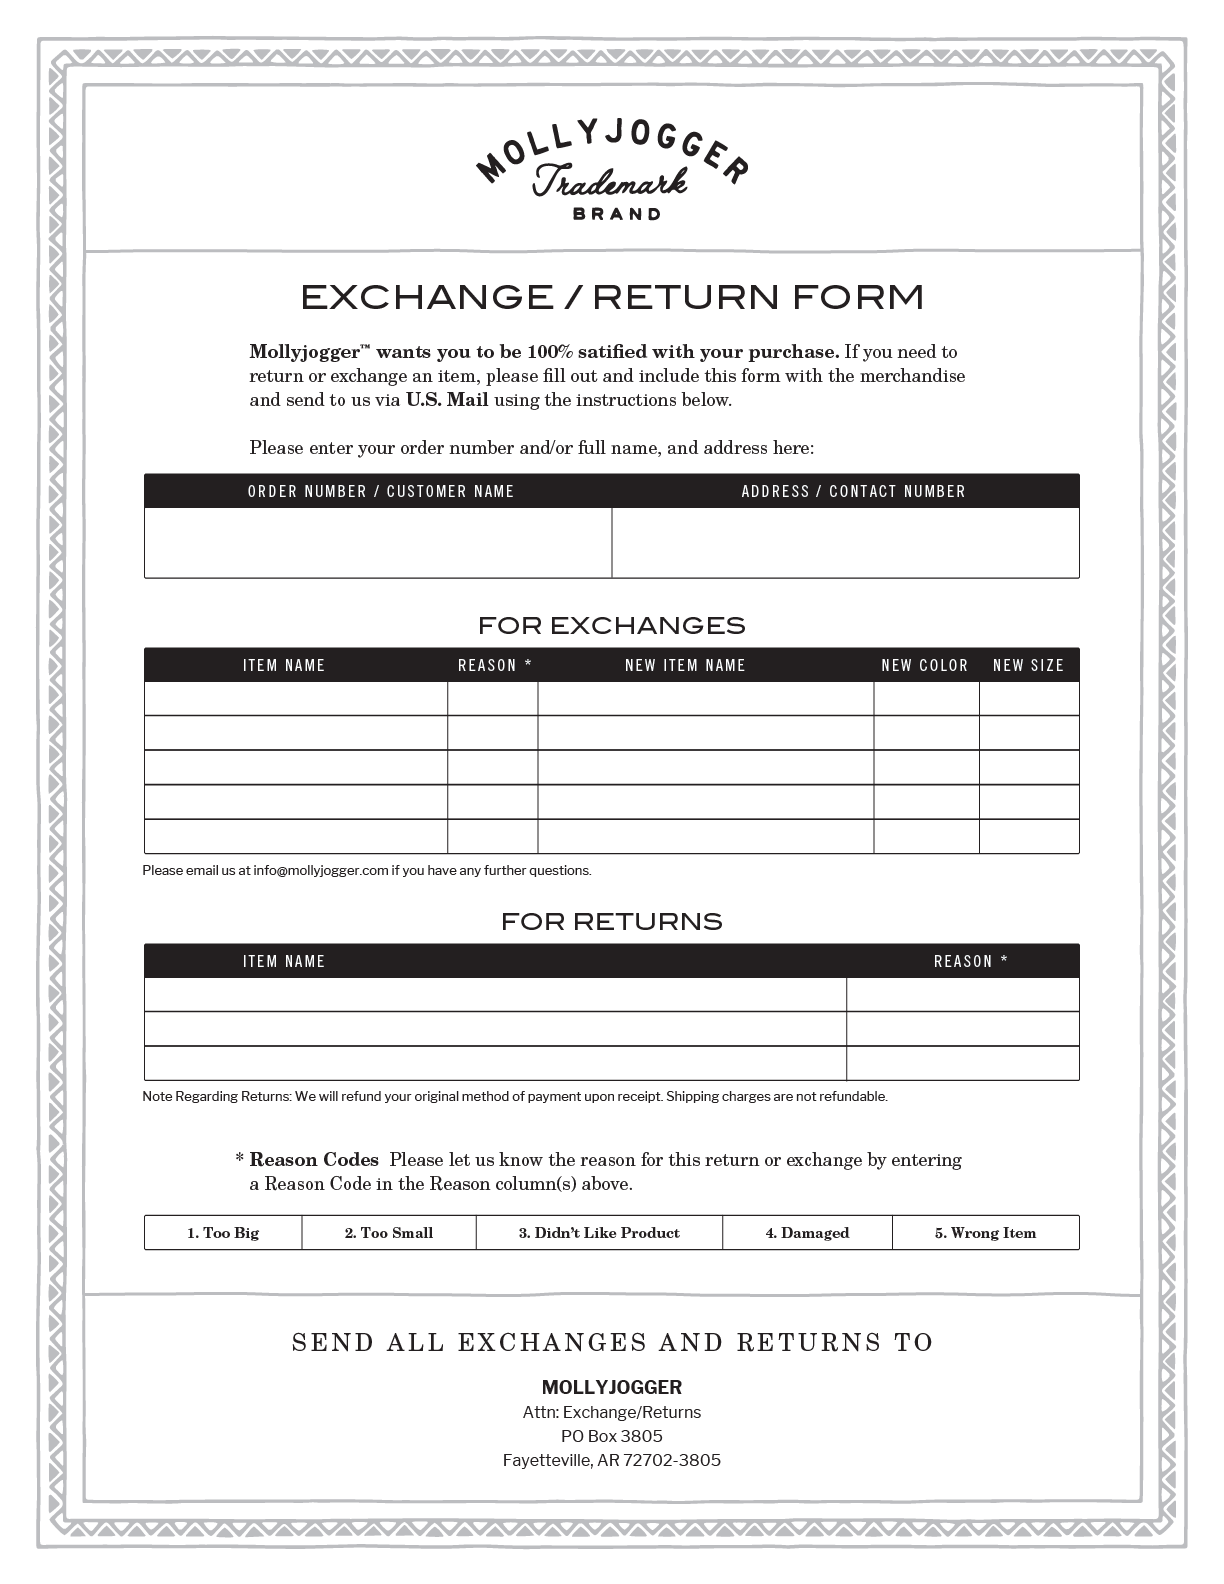 Mollyjogger Exchange Return form